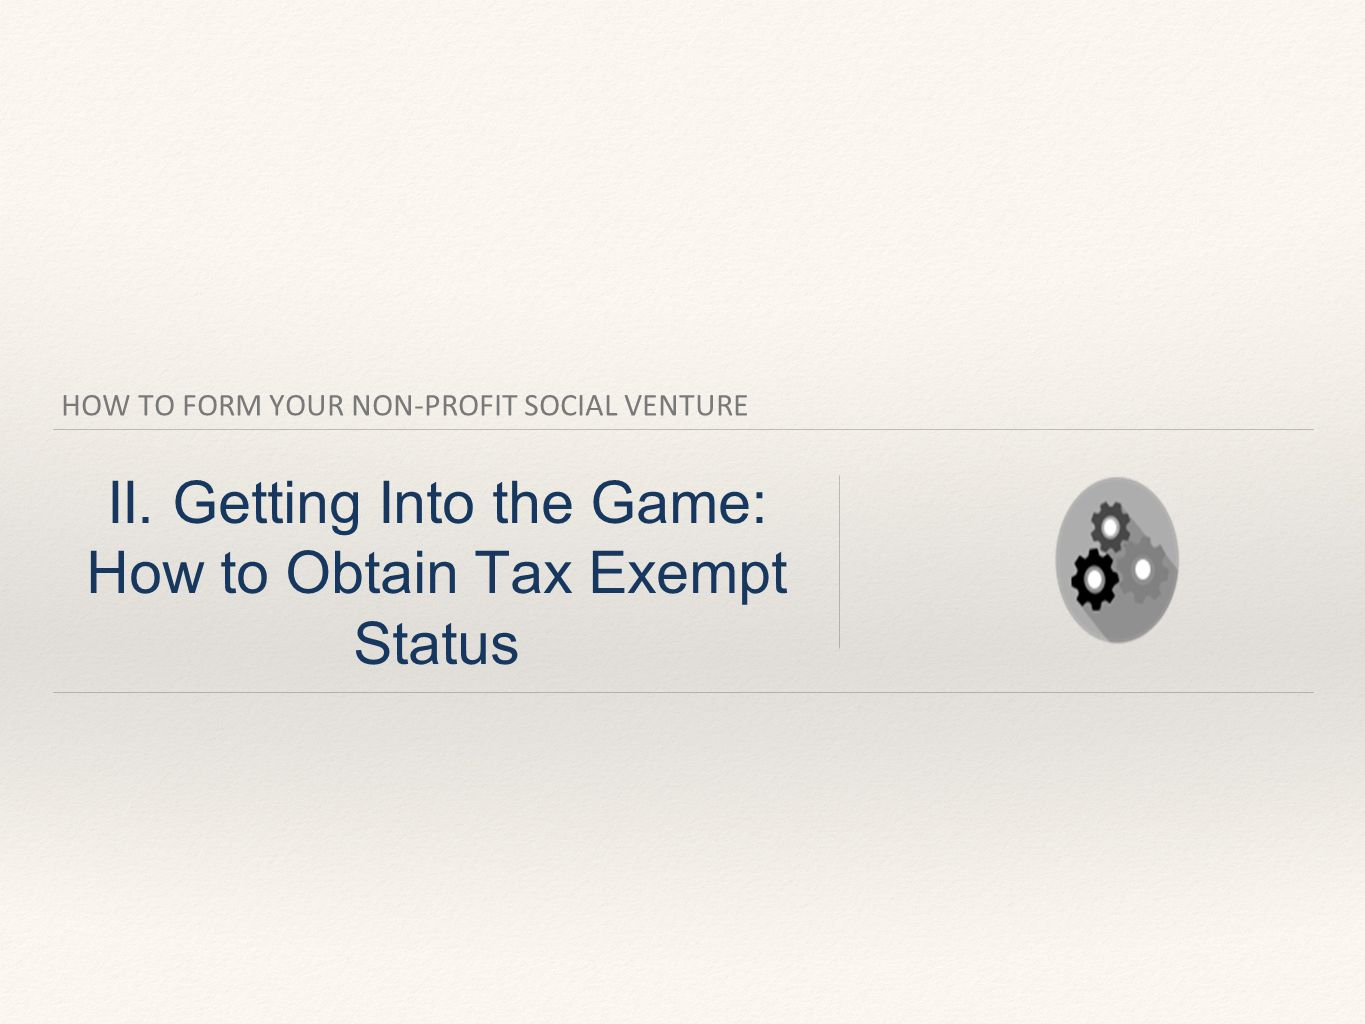 HOW TO FORM YOUR NON-PROFIT SOCIAL VENTURE II.